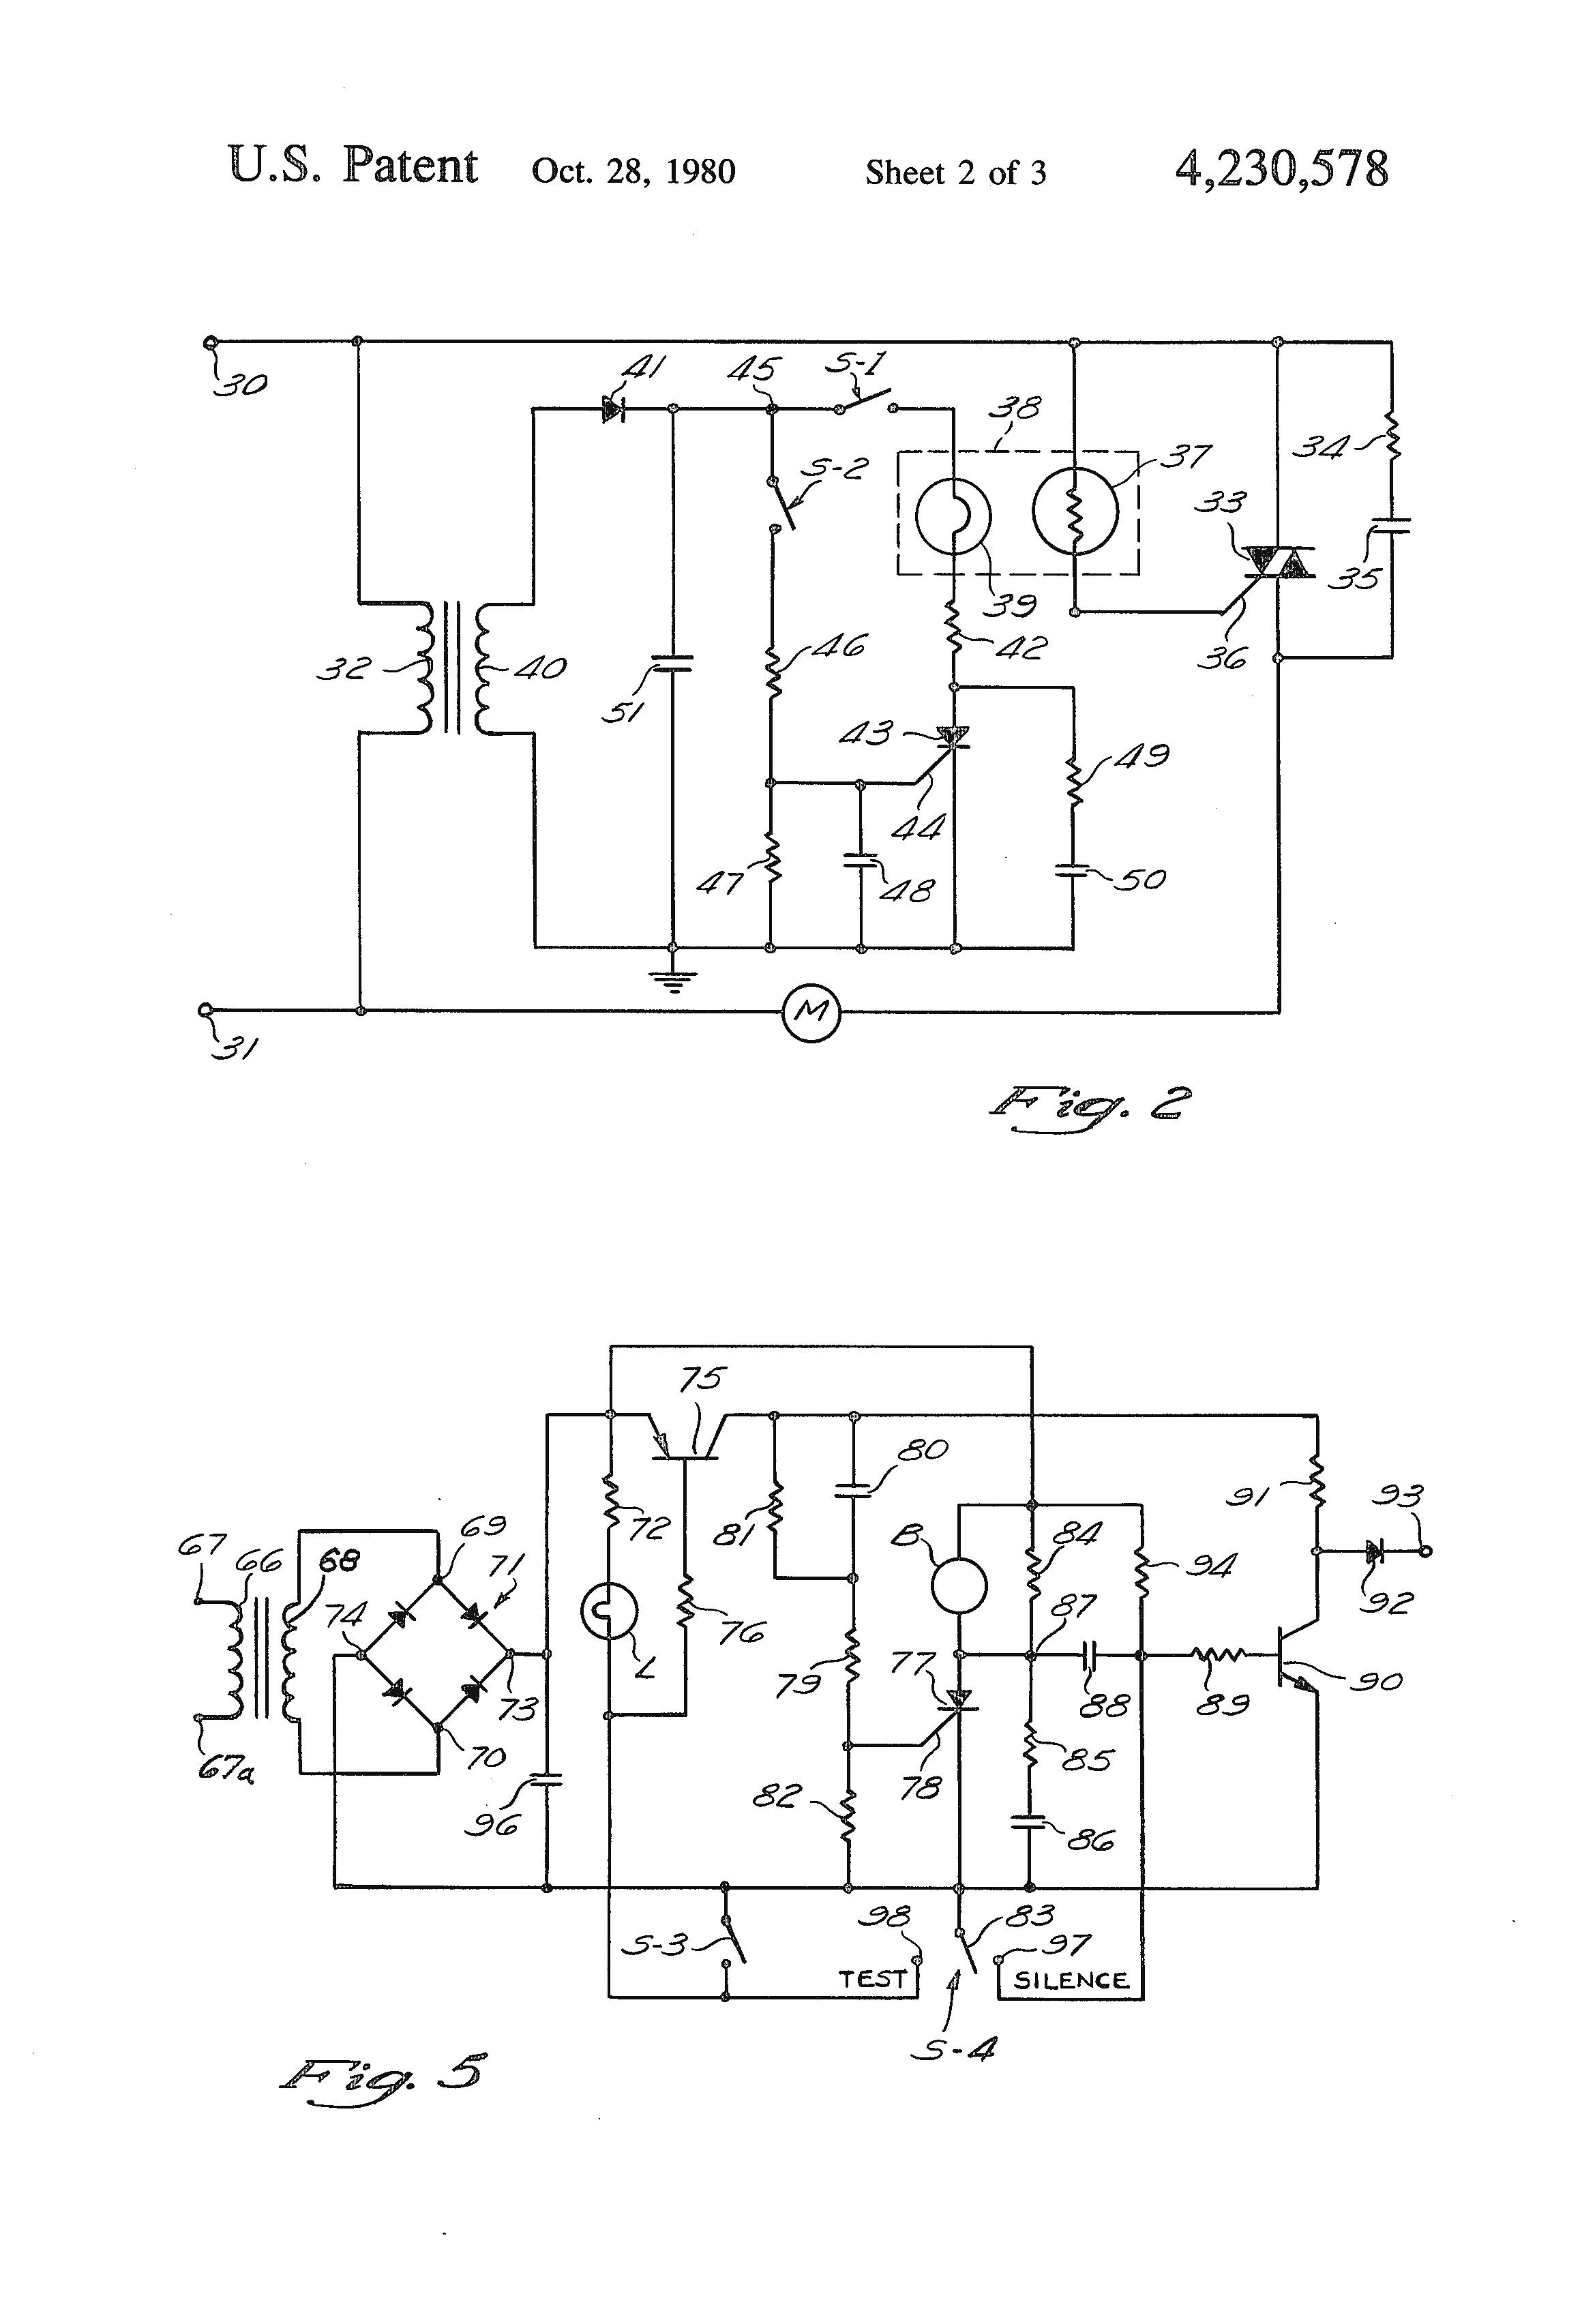 Septic Tank Float Switch Wiring Diagram Stylesync Me Picturesque 9 6 Septic Tank Electrical Installation Diagram